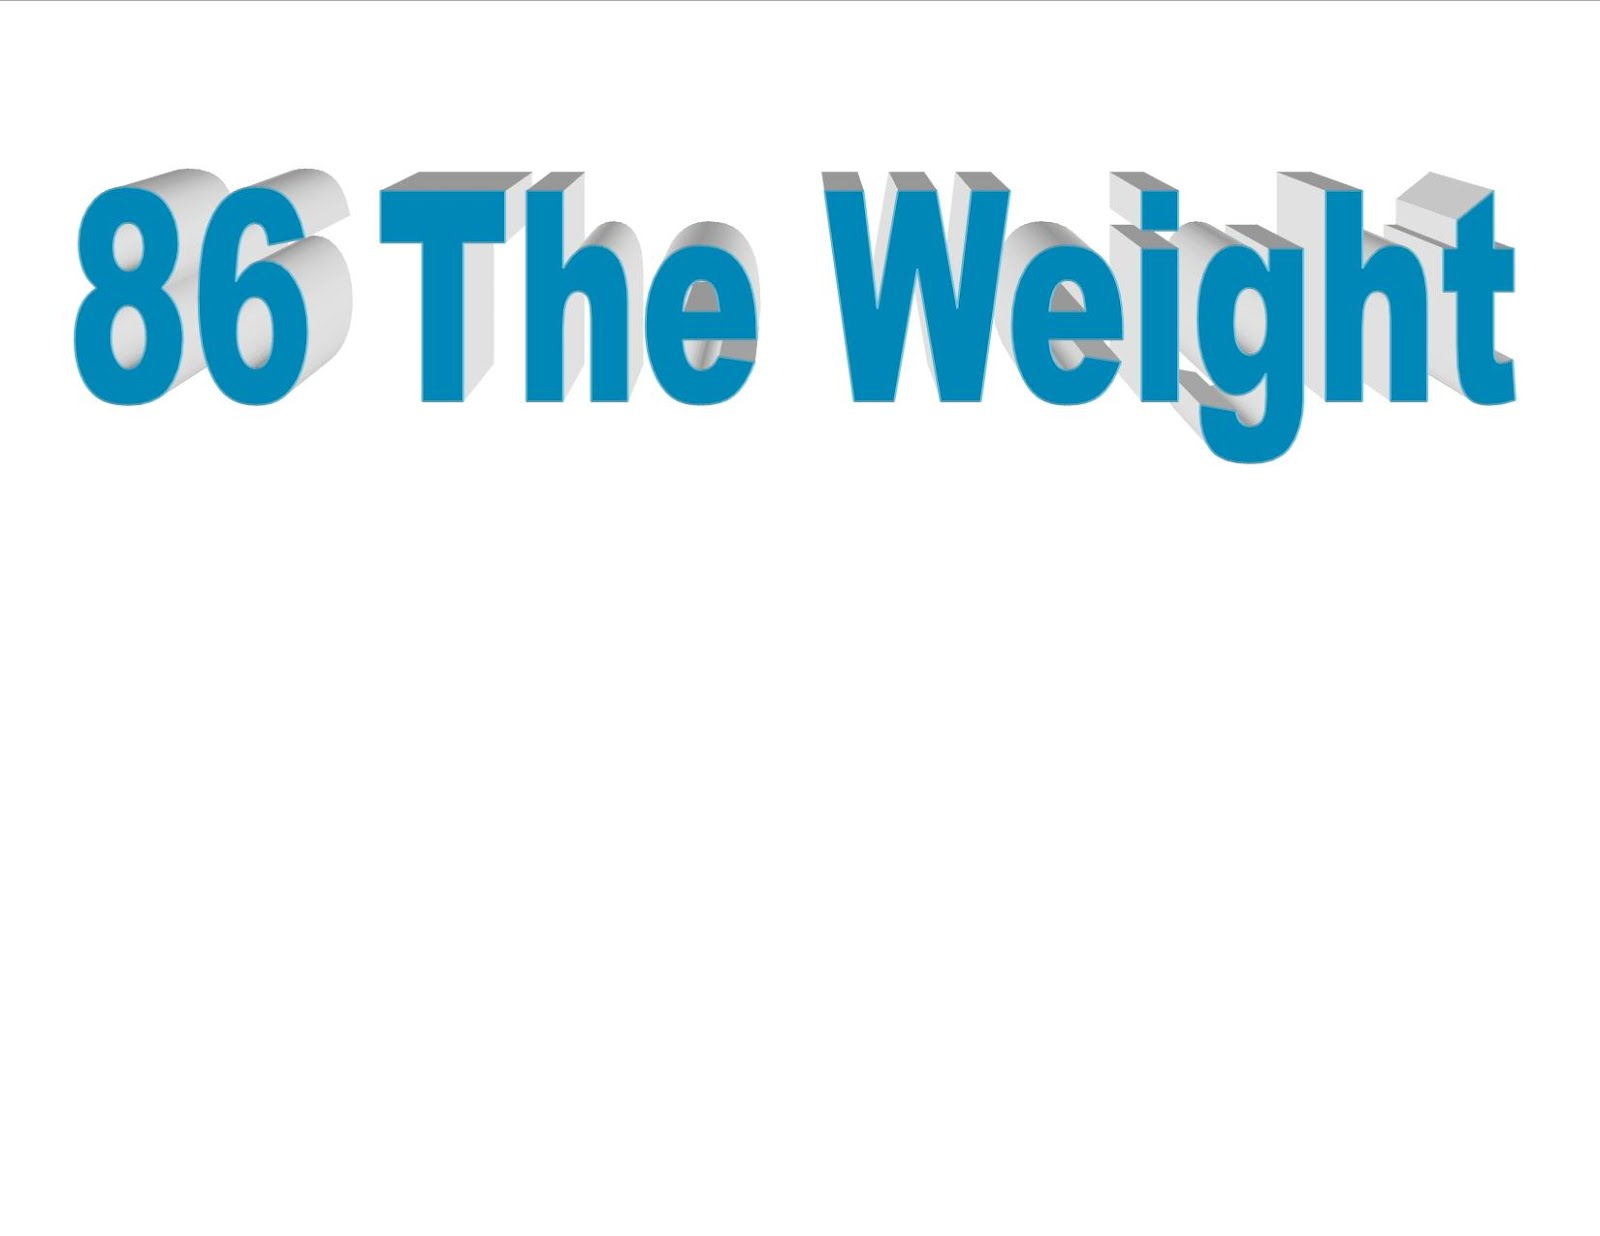 86TheWeight